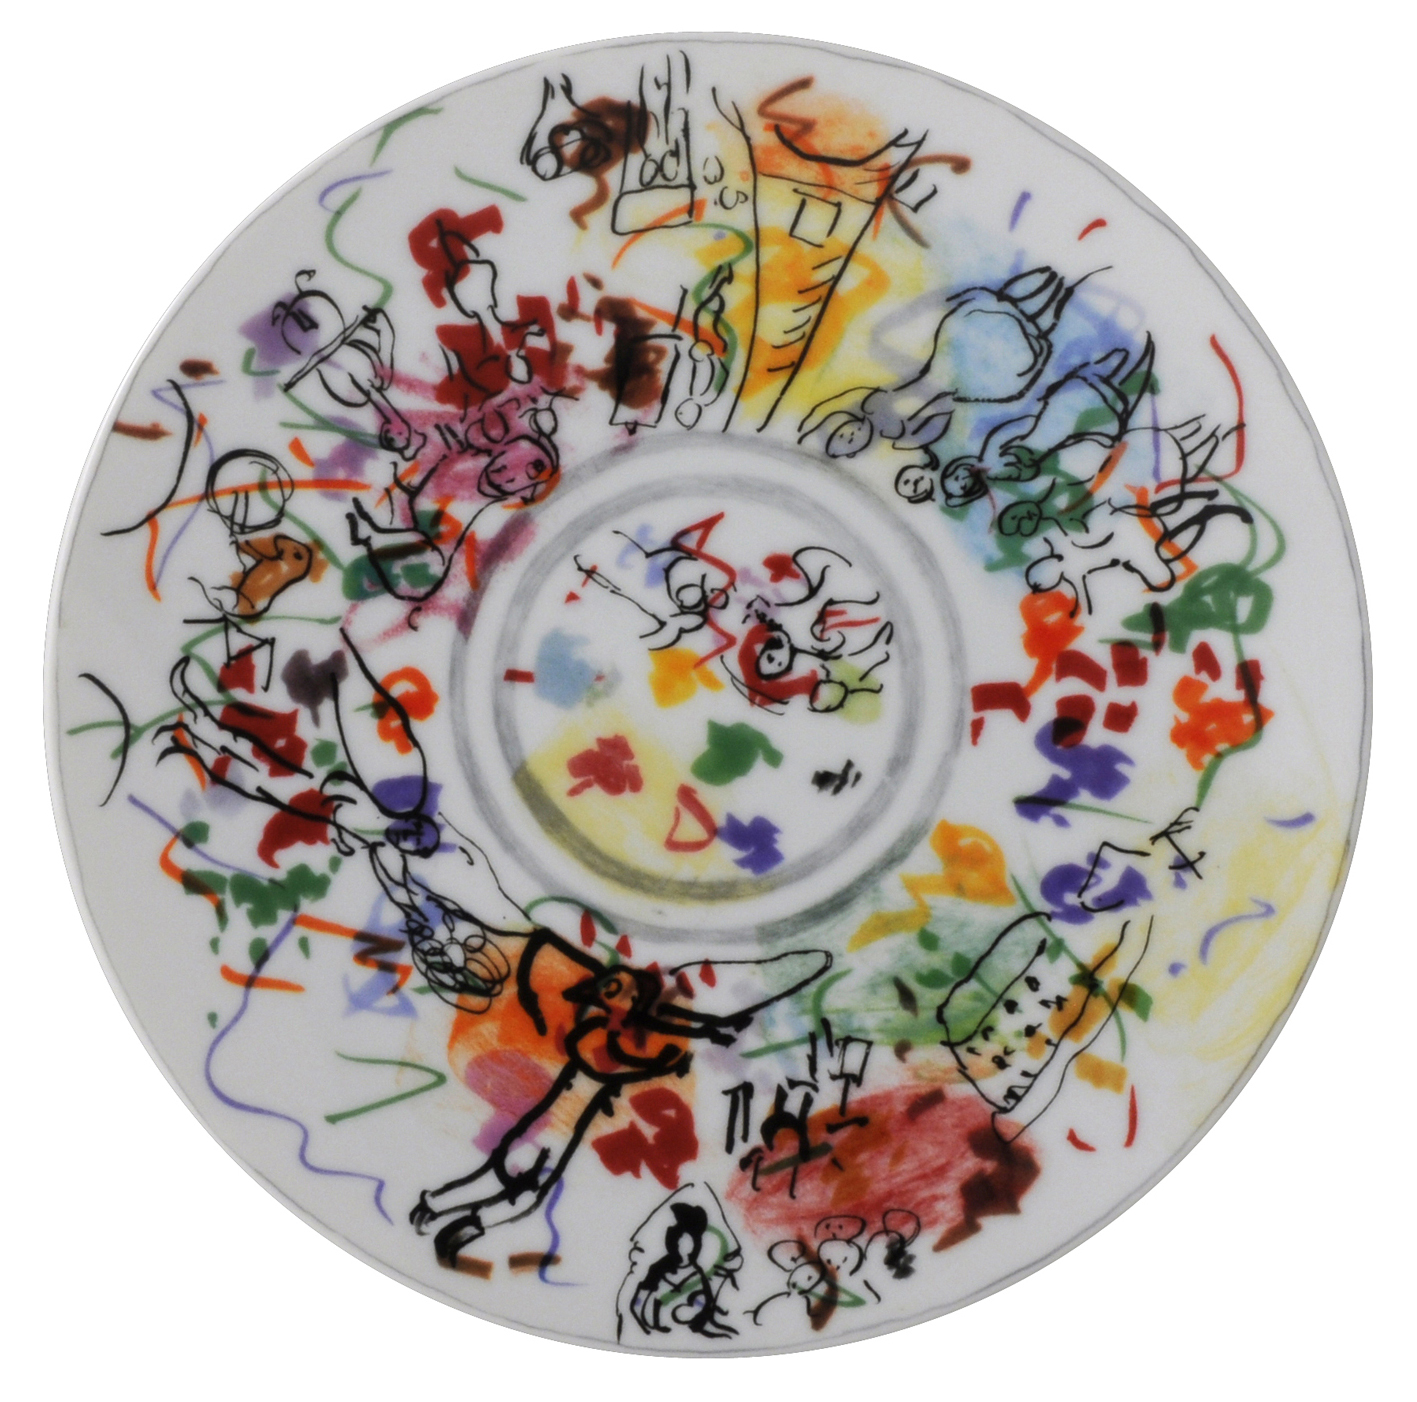 Chagall Ceramic Plate